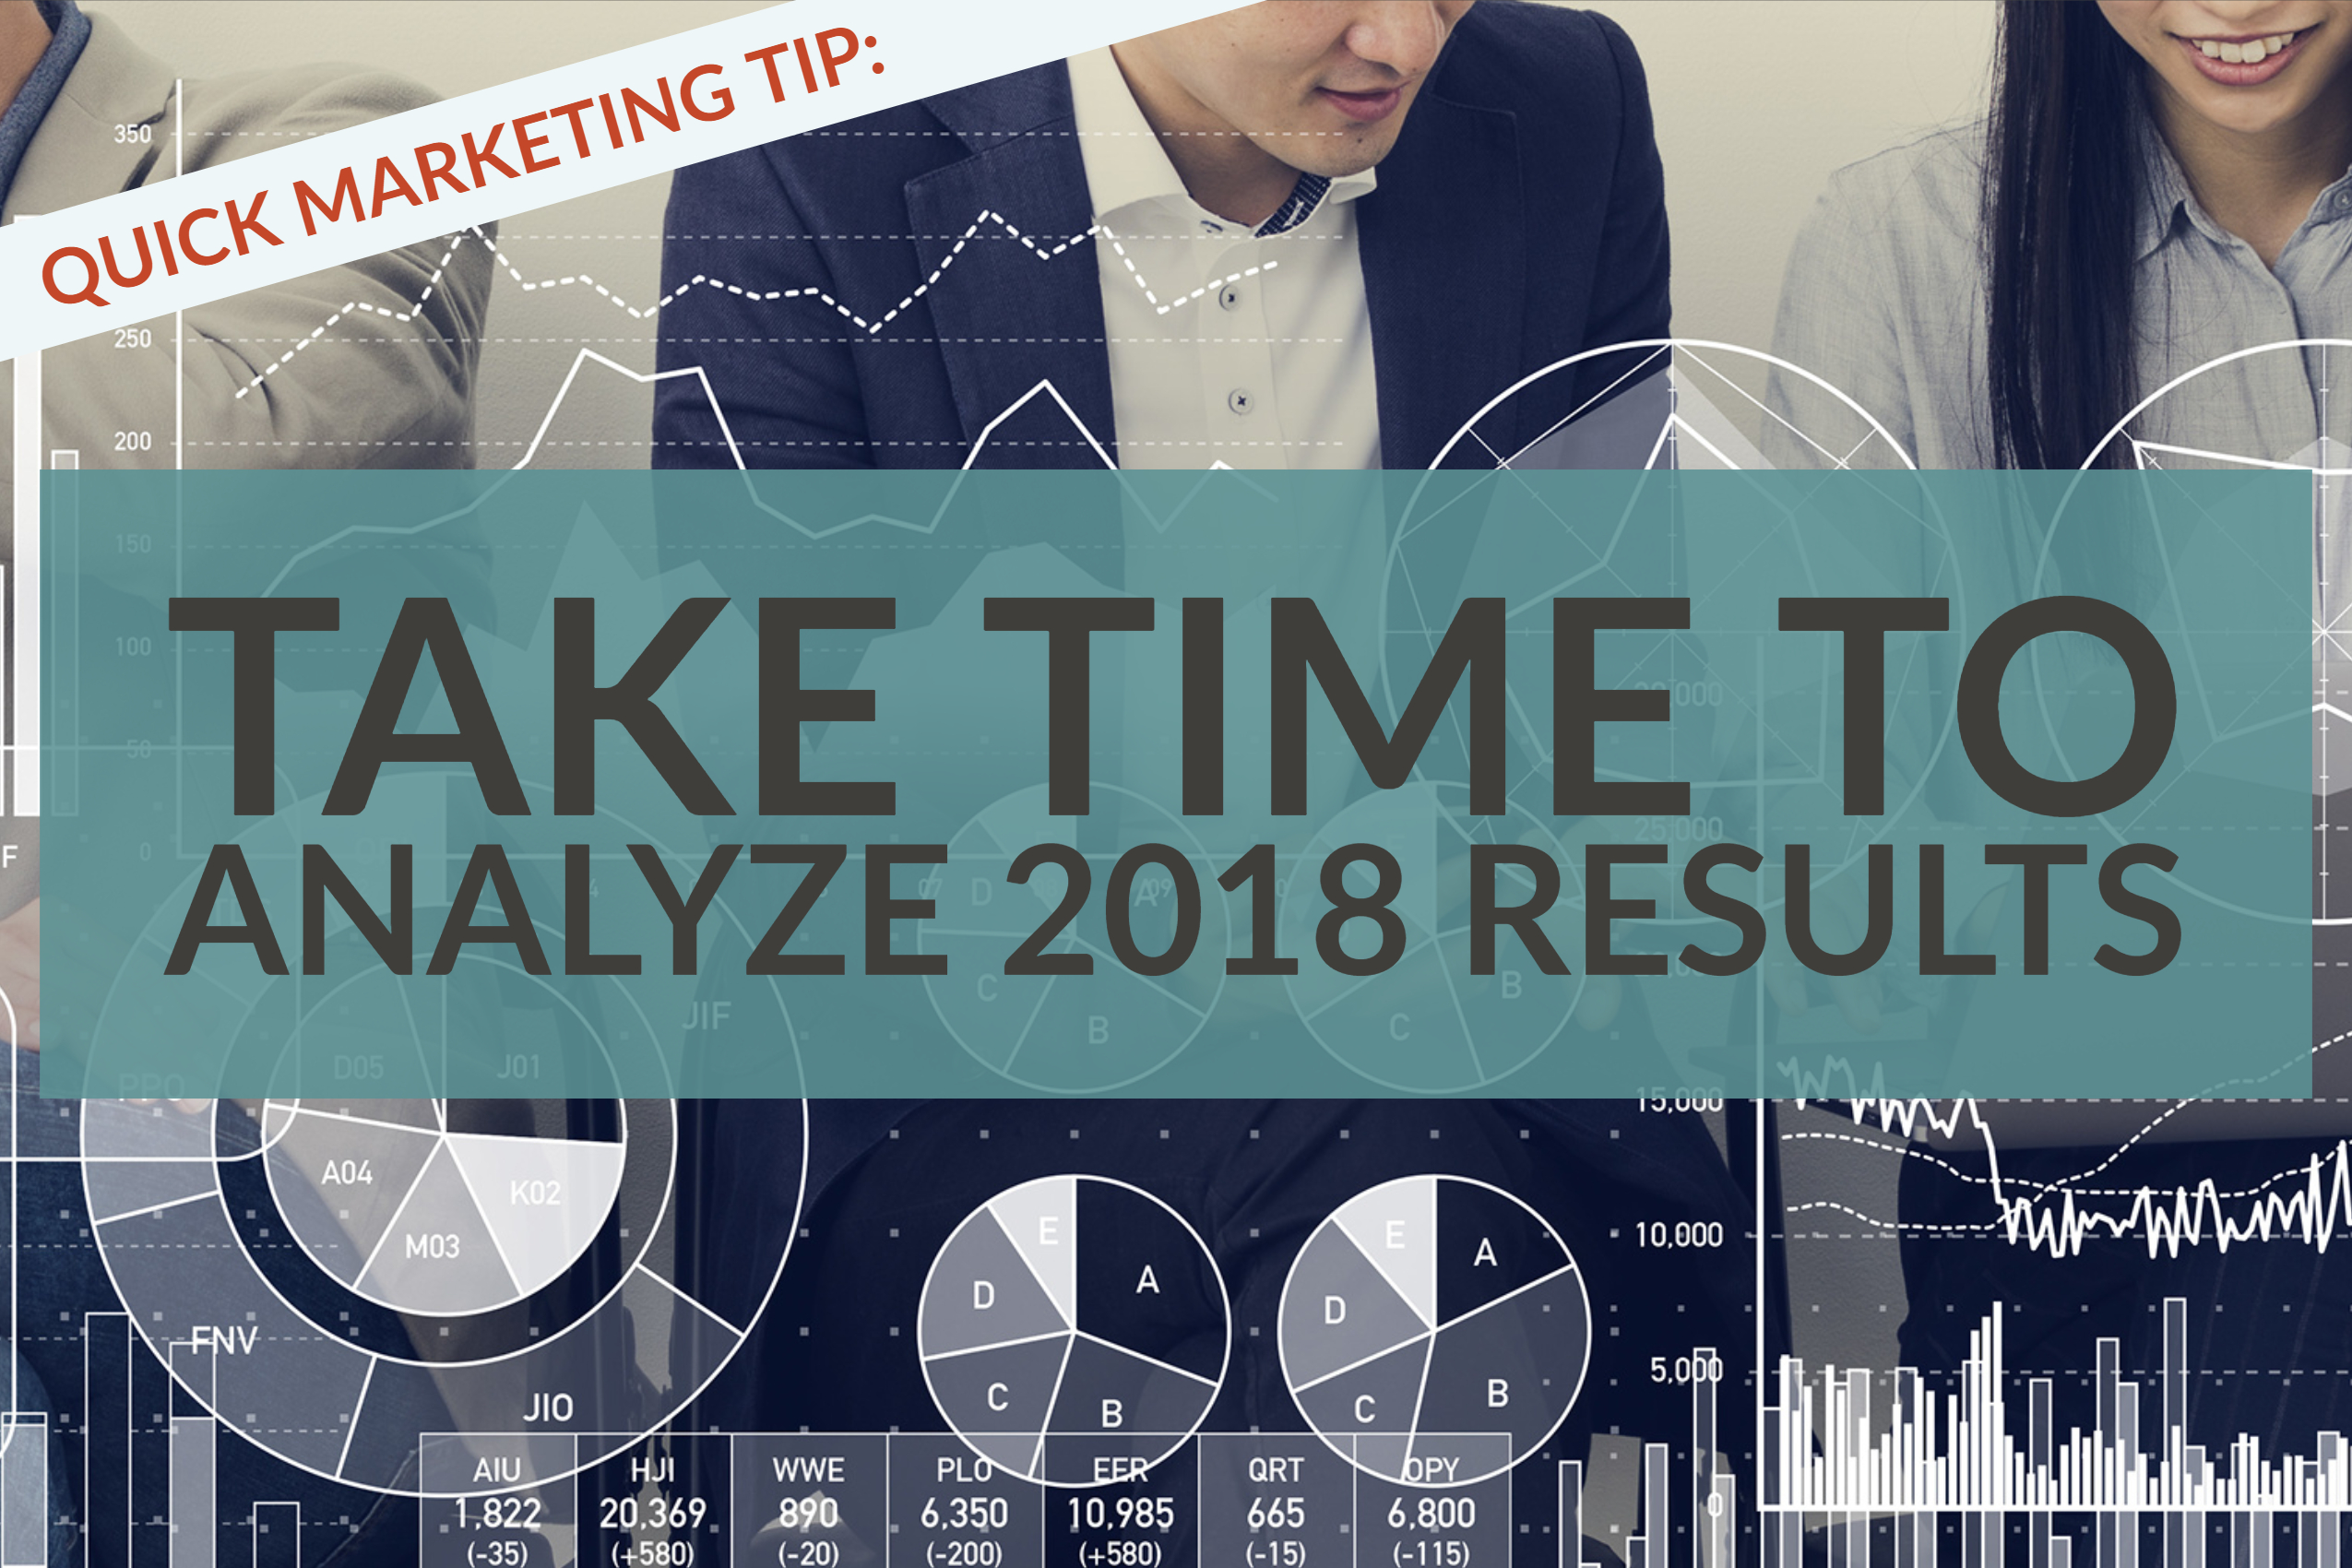 Quick Marketing Tip_ Take Time To Analyze 2018 Results (1)